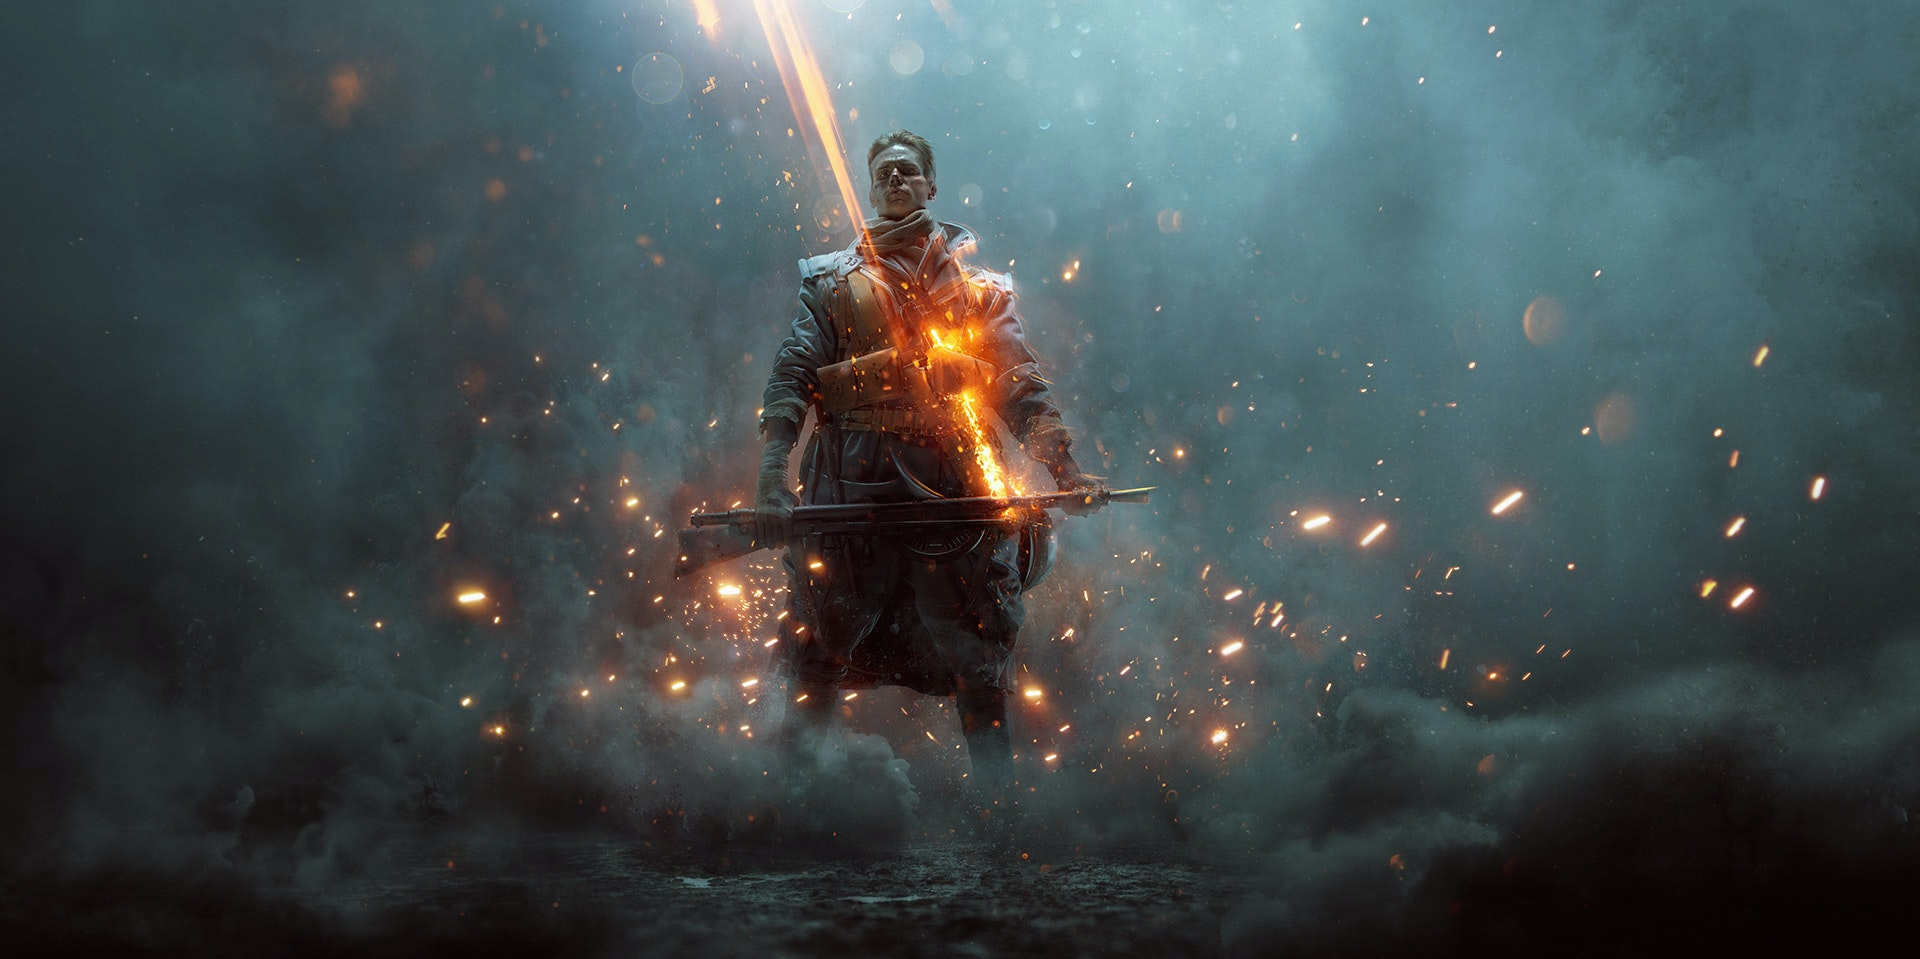 How to Unlock Every New DLC Weapon in 'Battlefield 1'